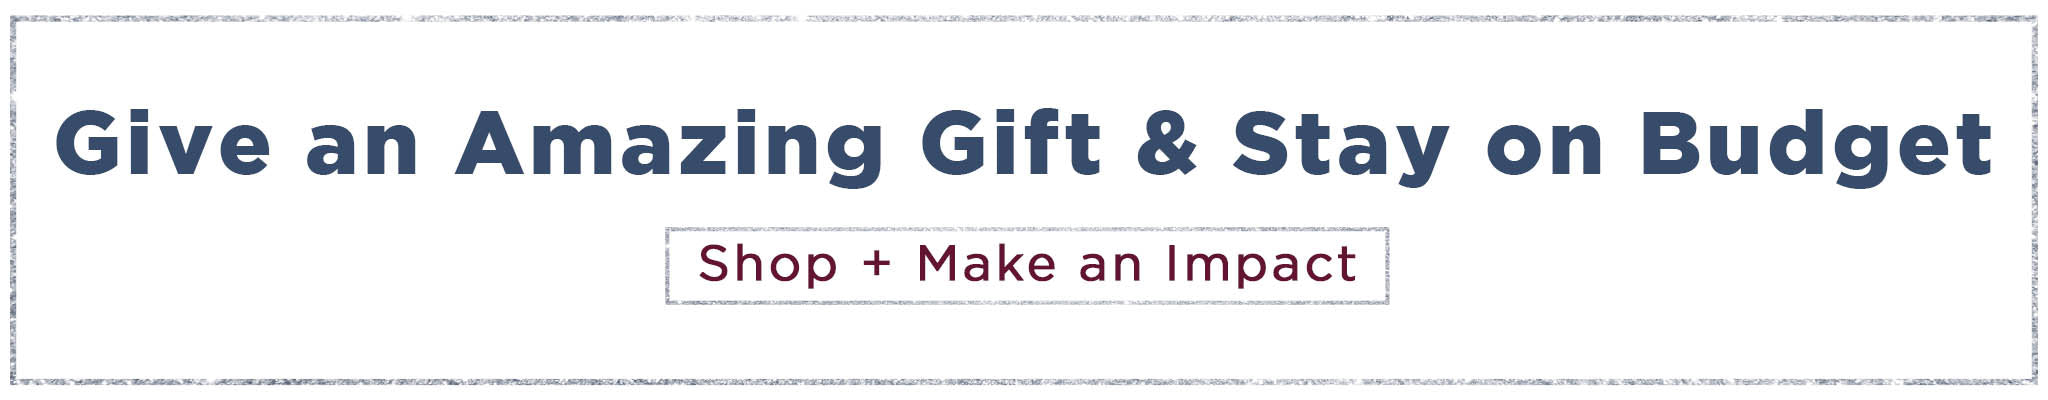 Give an amazing gift & stay on budget | Shop + Make an Impact